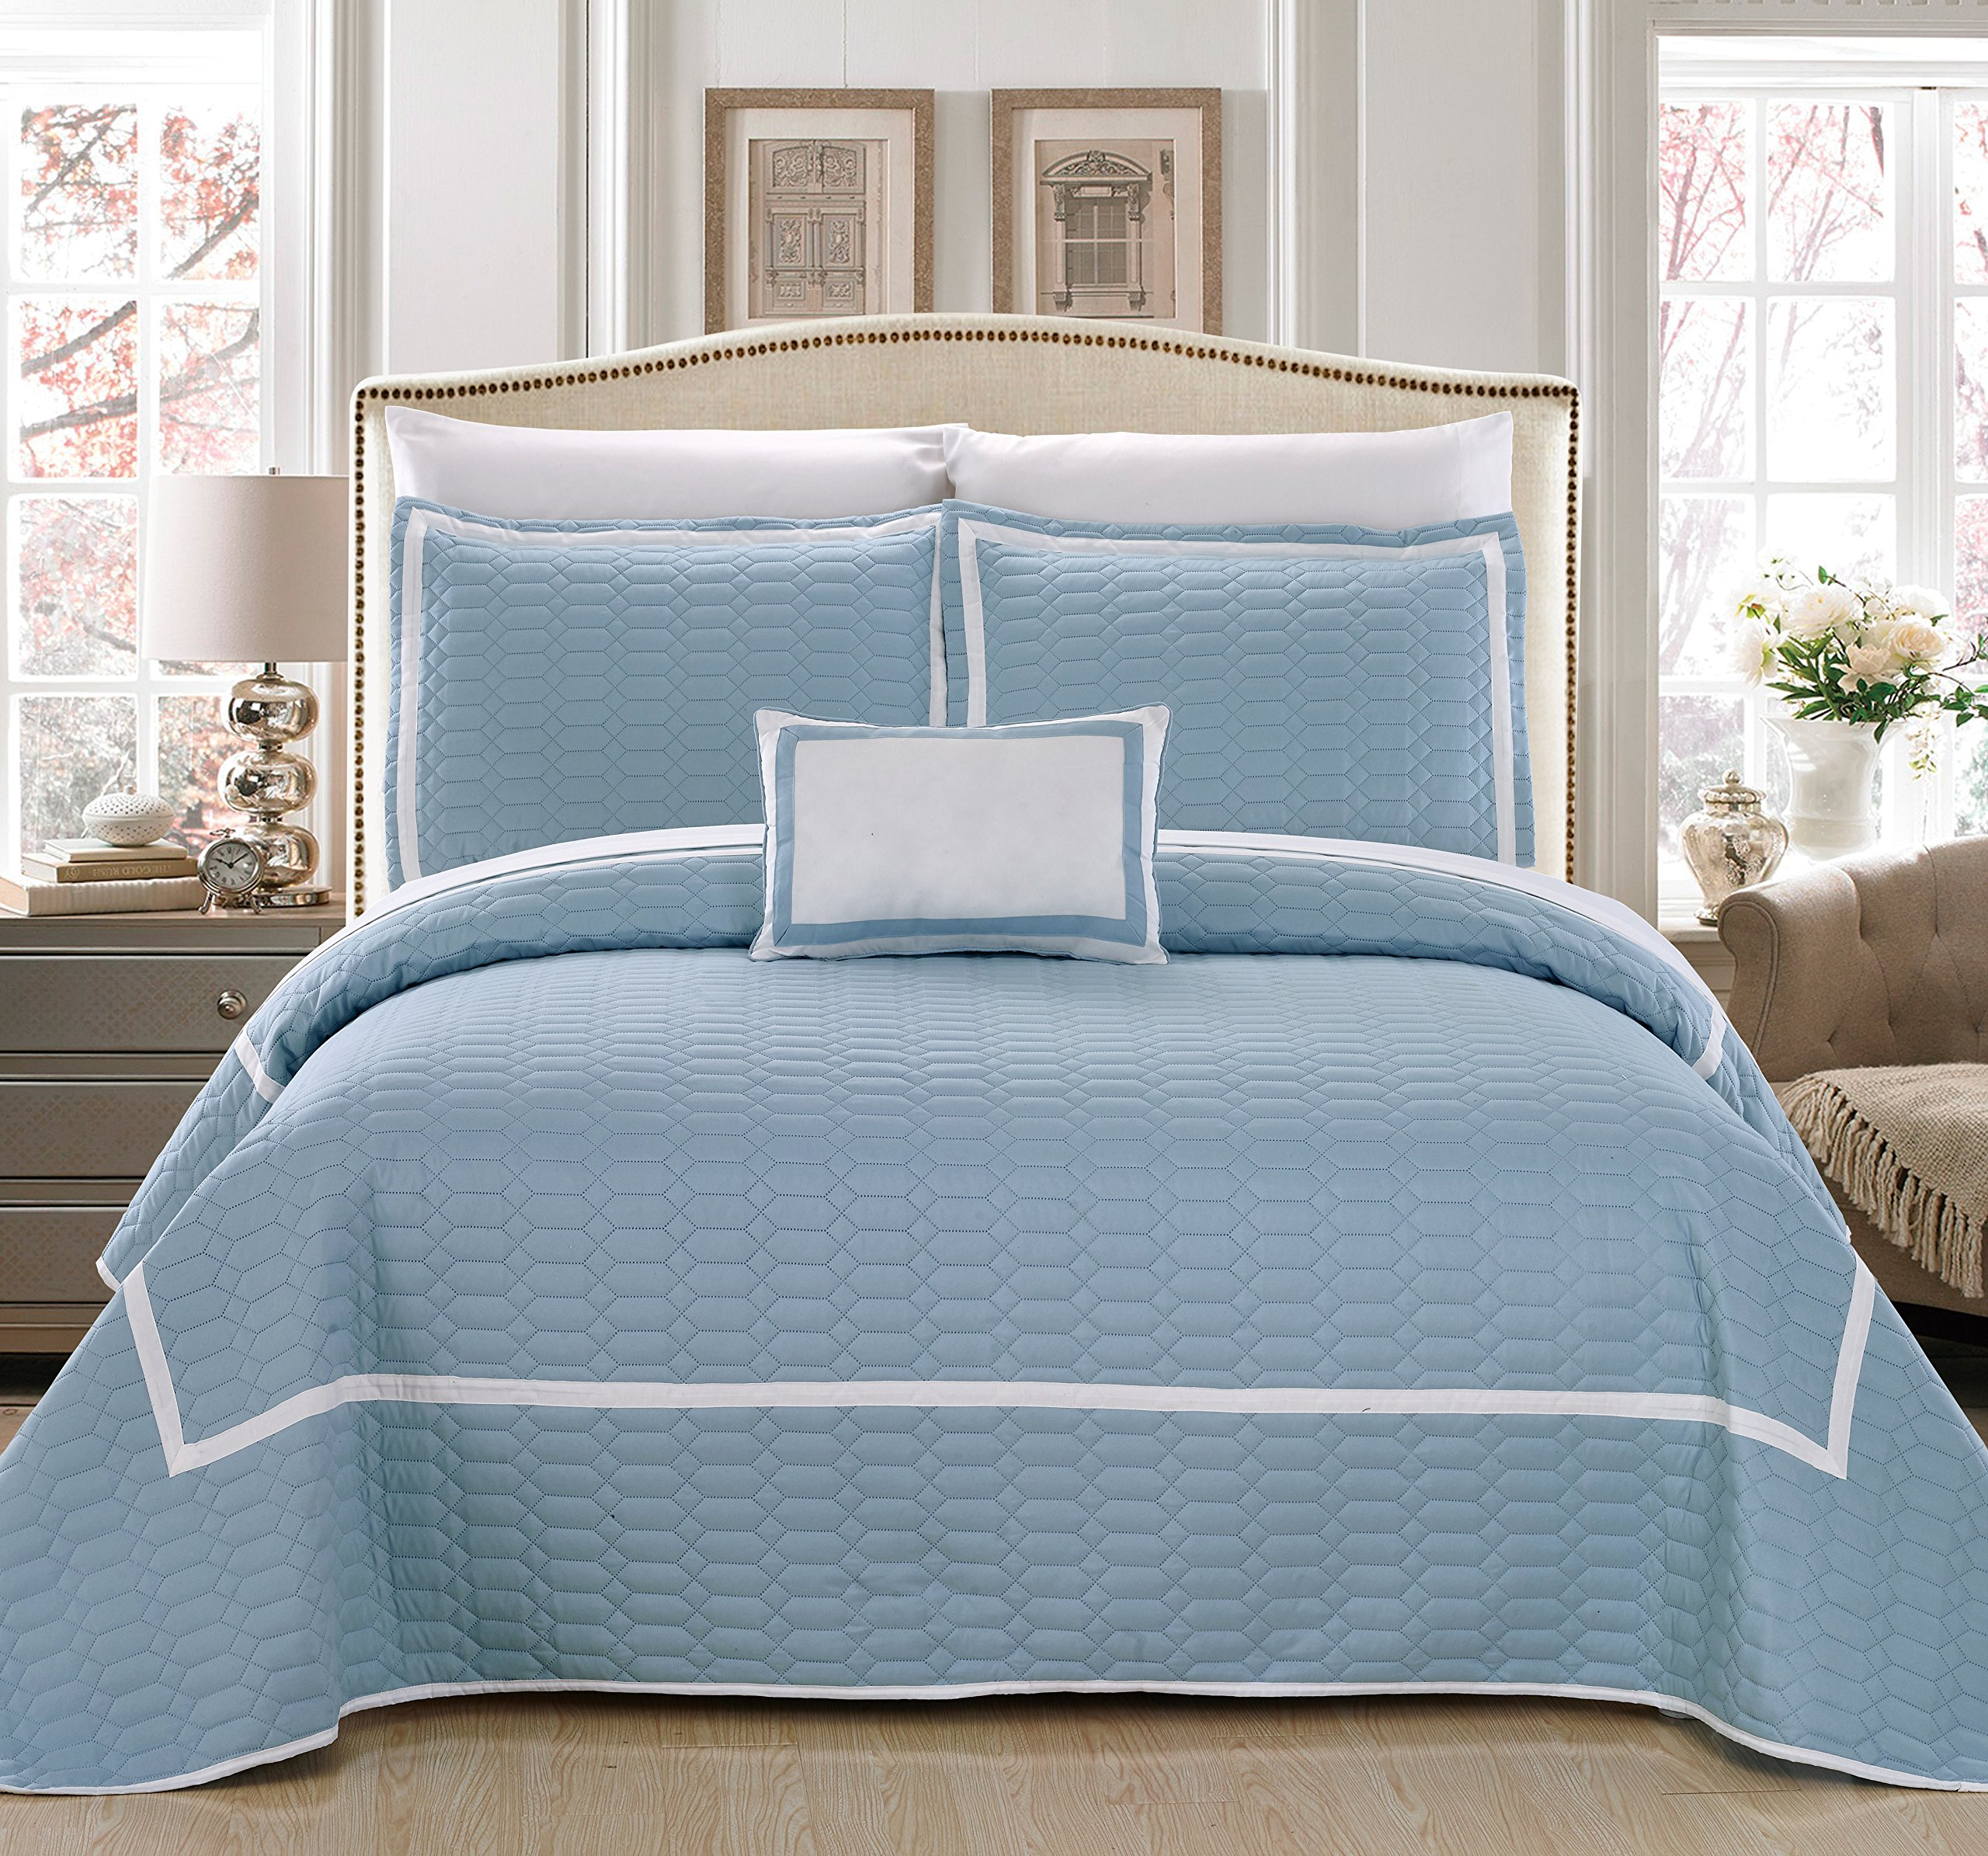 Chic Home QS4837-AN Mesa 8 Piece Quilt Cover Set Hotel Collection Two Tone Banded Geometric Embroidered Quilted Bed in a Bag Bedding, Blue, King